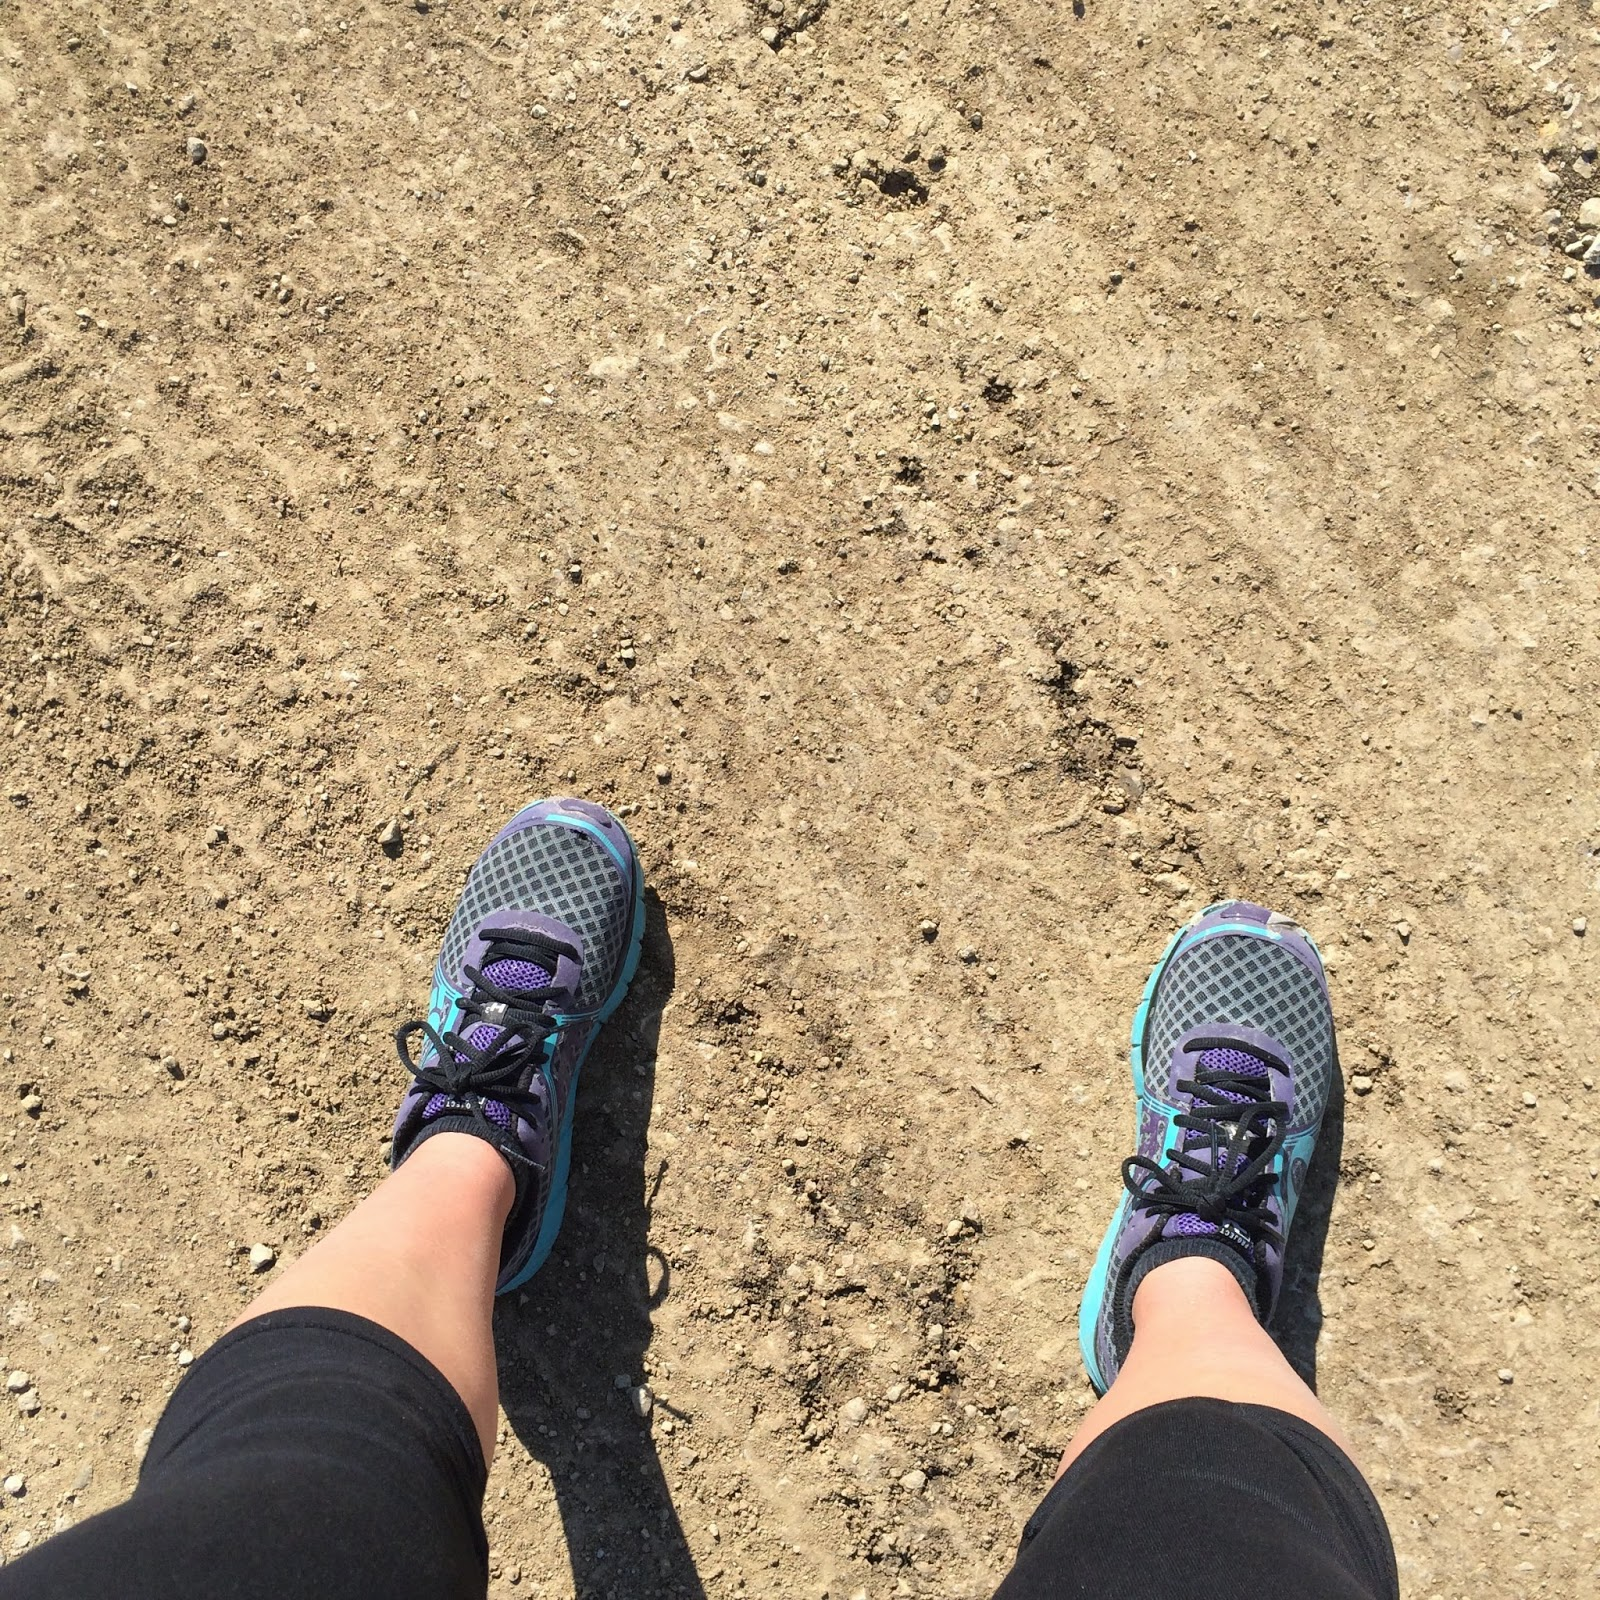 Running shoes on gravel road